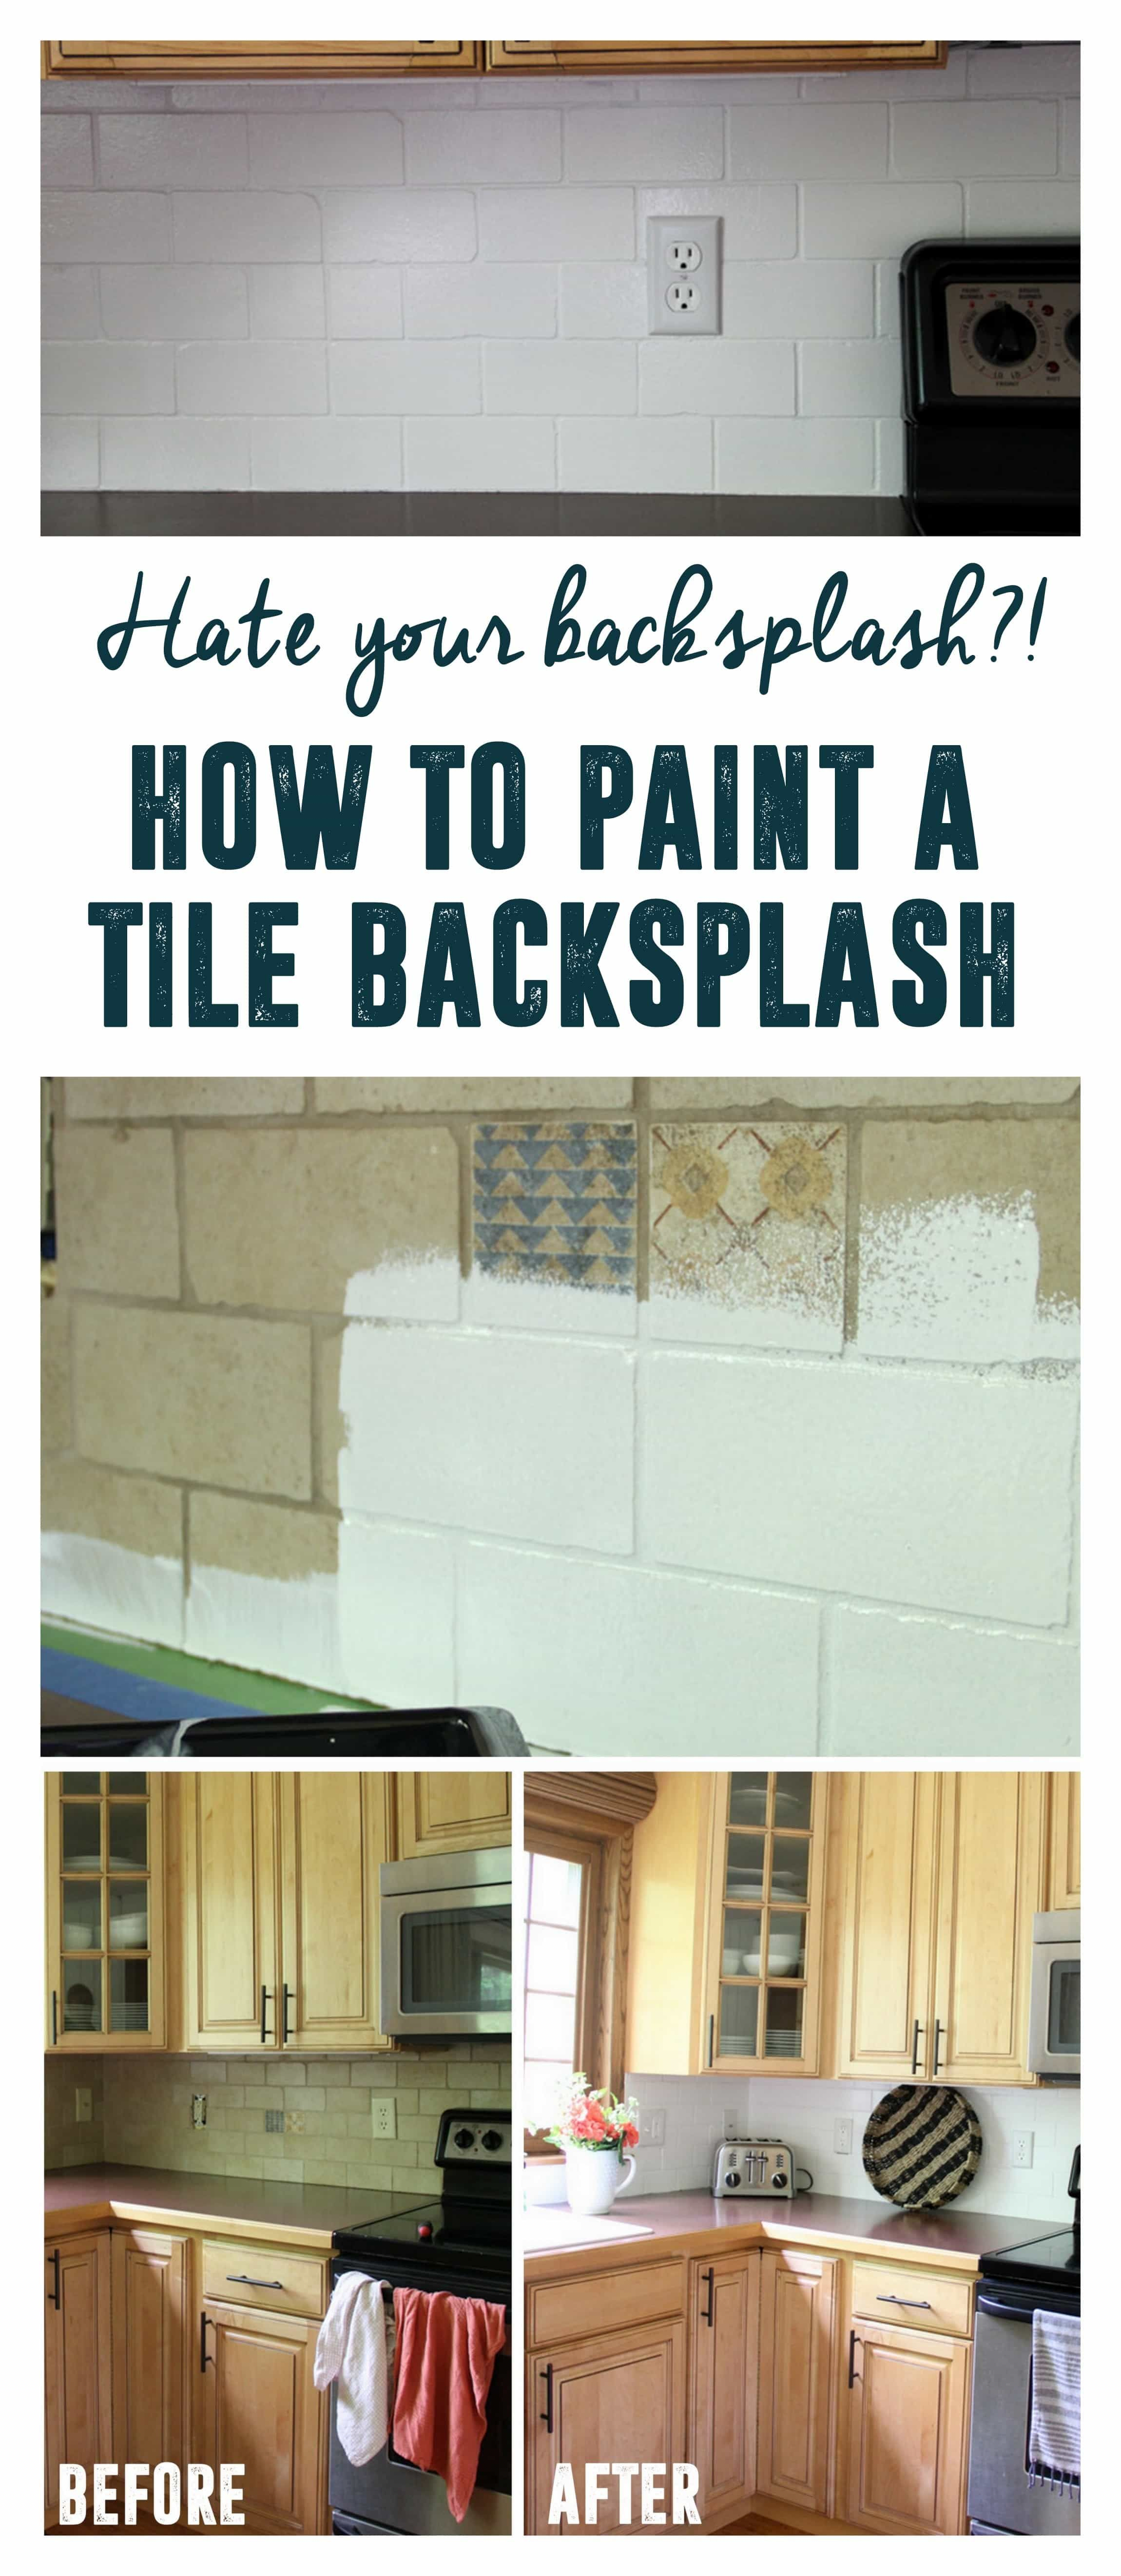 How to Paint a Tile Backsplash - Diy tile backsplash, Diy backsplash, Tile backsplash, Painting tile, Kitchen tiles backsplash, Paint backsplash - Hey friends! I am so happy that you're here today! If you follow me on instagram you may have seen that last week I decided to take a big gamble and attempt to paint my backsplash! I'm happy to report that it turned out amazing! Maybe you hate your backsplash too  If so I am so excited to teach you how to paint a tile backsplash! This is what I started with  A dated an dingy tile backsplash, that wasn't horrible, but also didn't fit my modern style  I started this project the way every DIY seems to start, by cleaning with